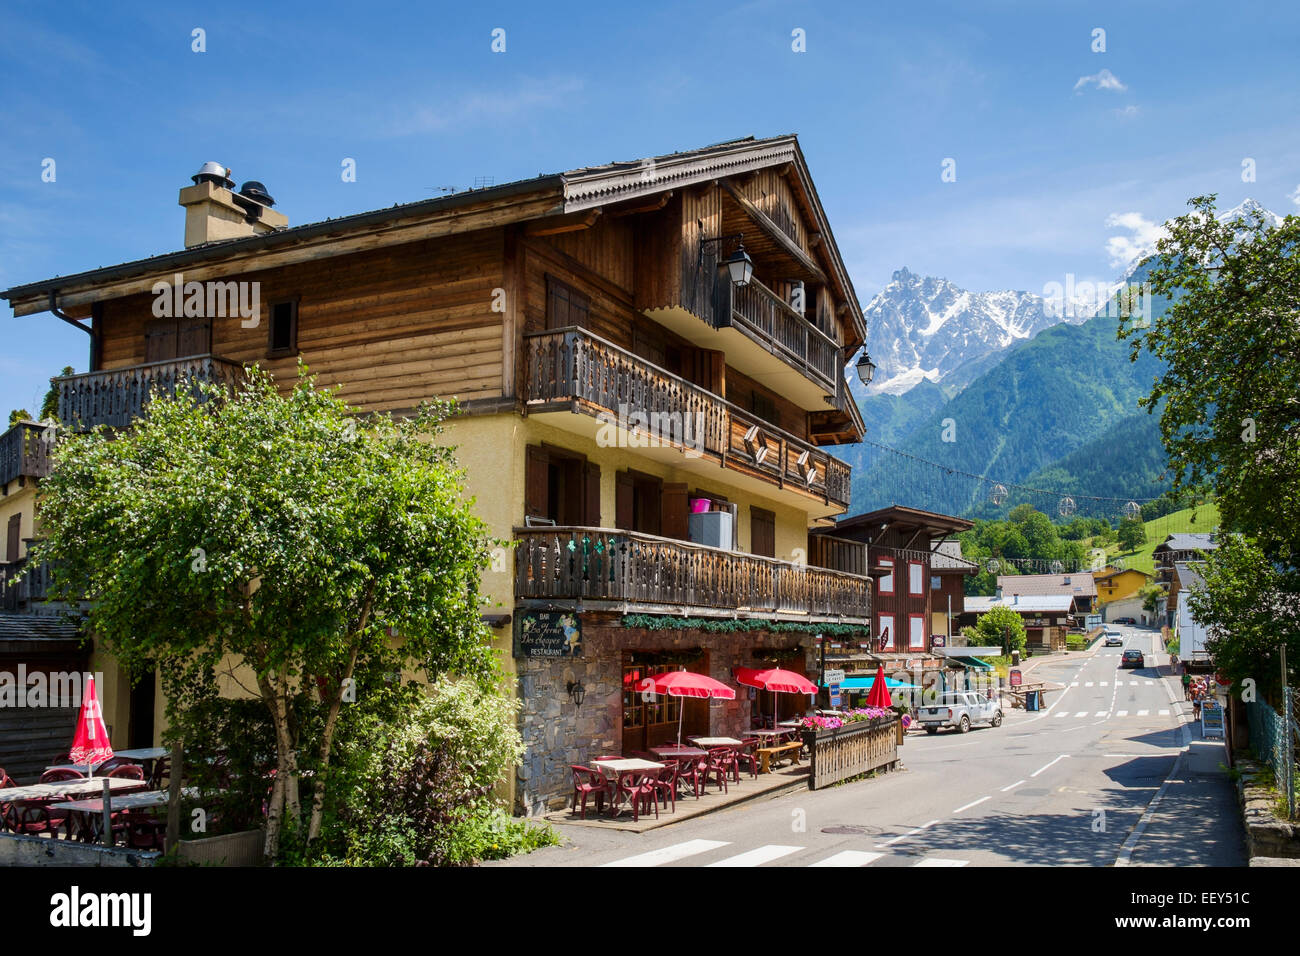 hotel with bar cafe in les houches chamonix alps stock photo royalty free image